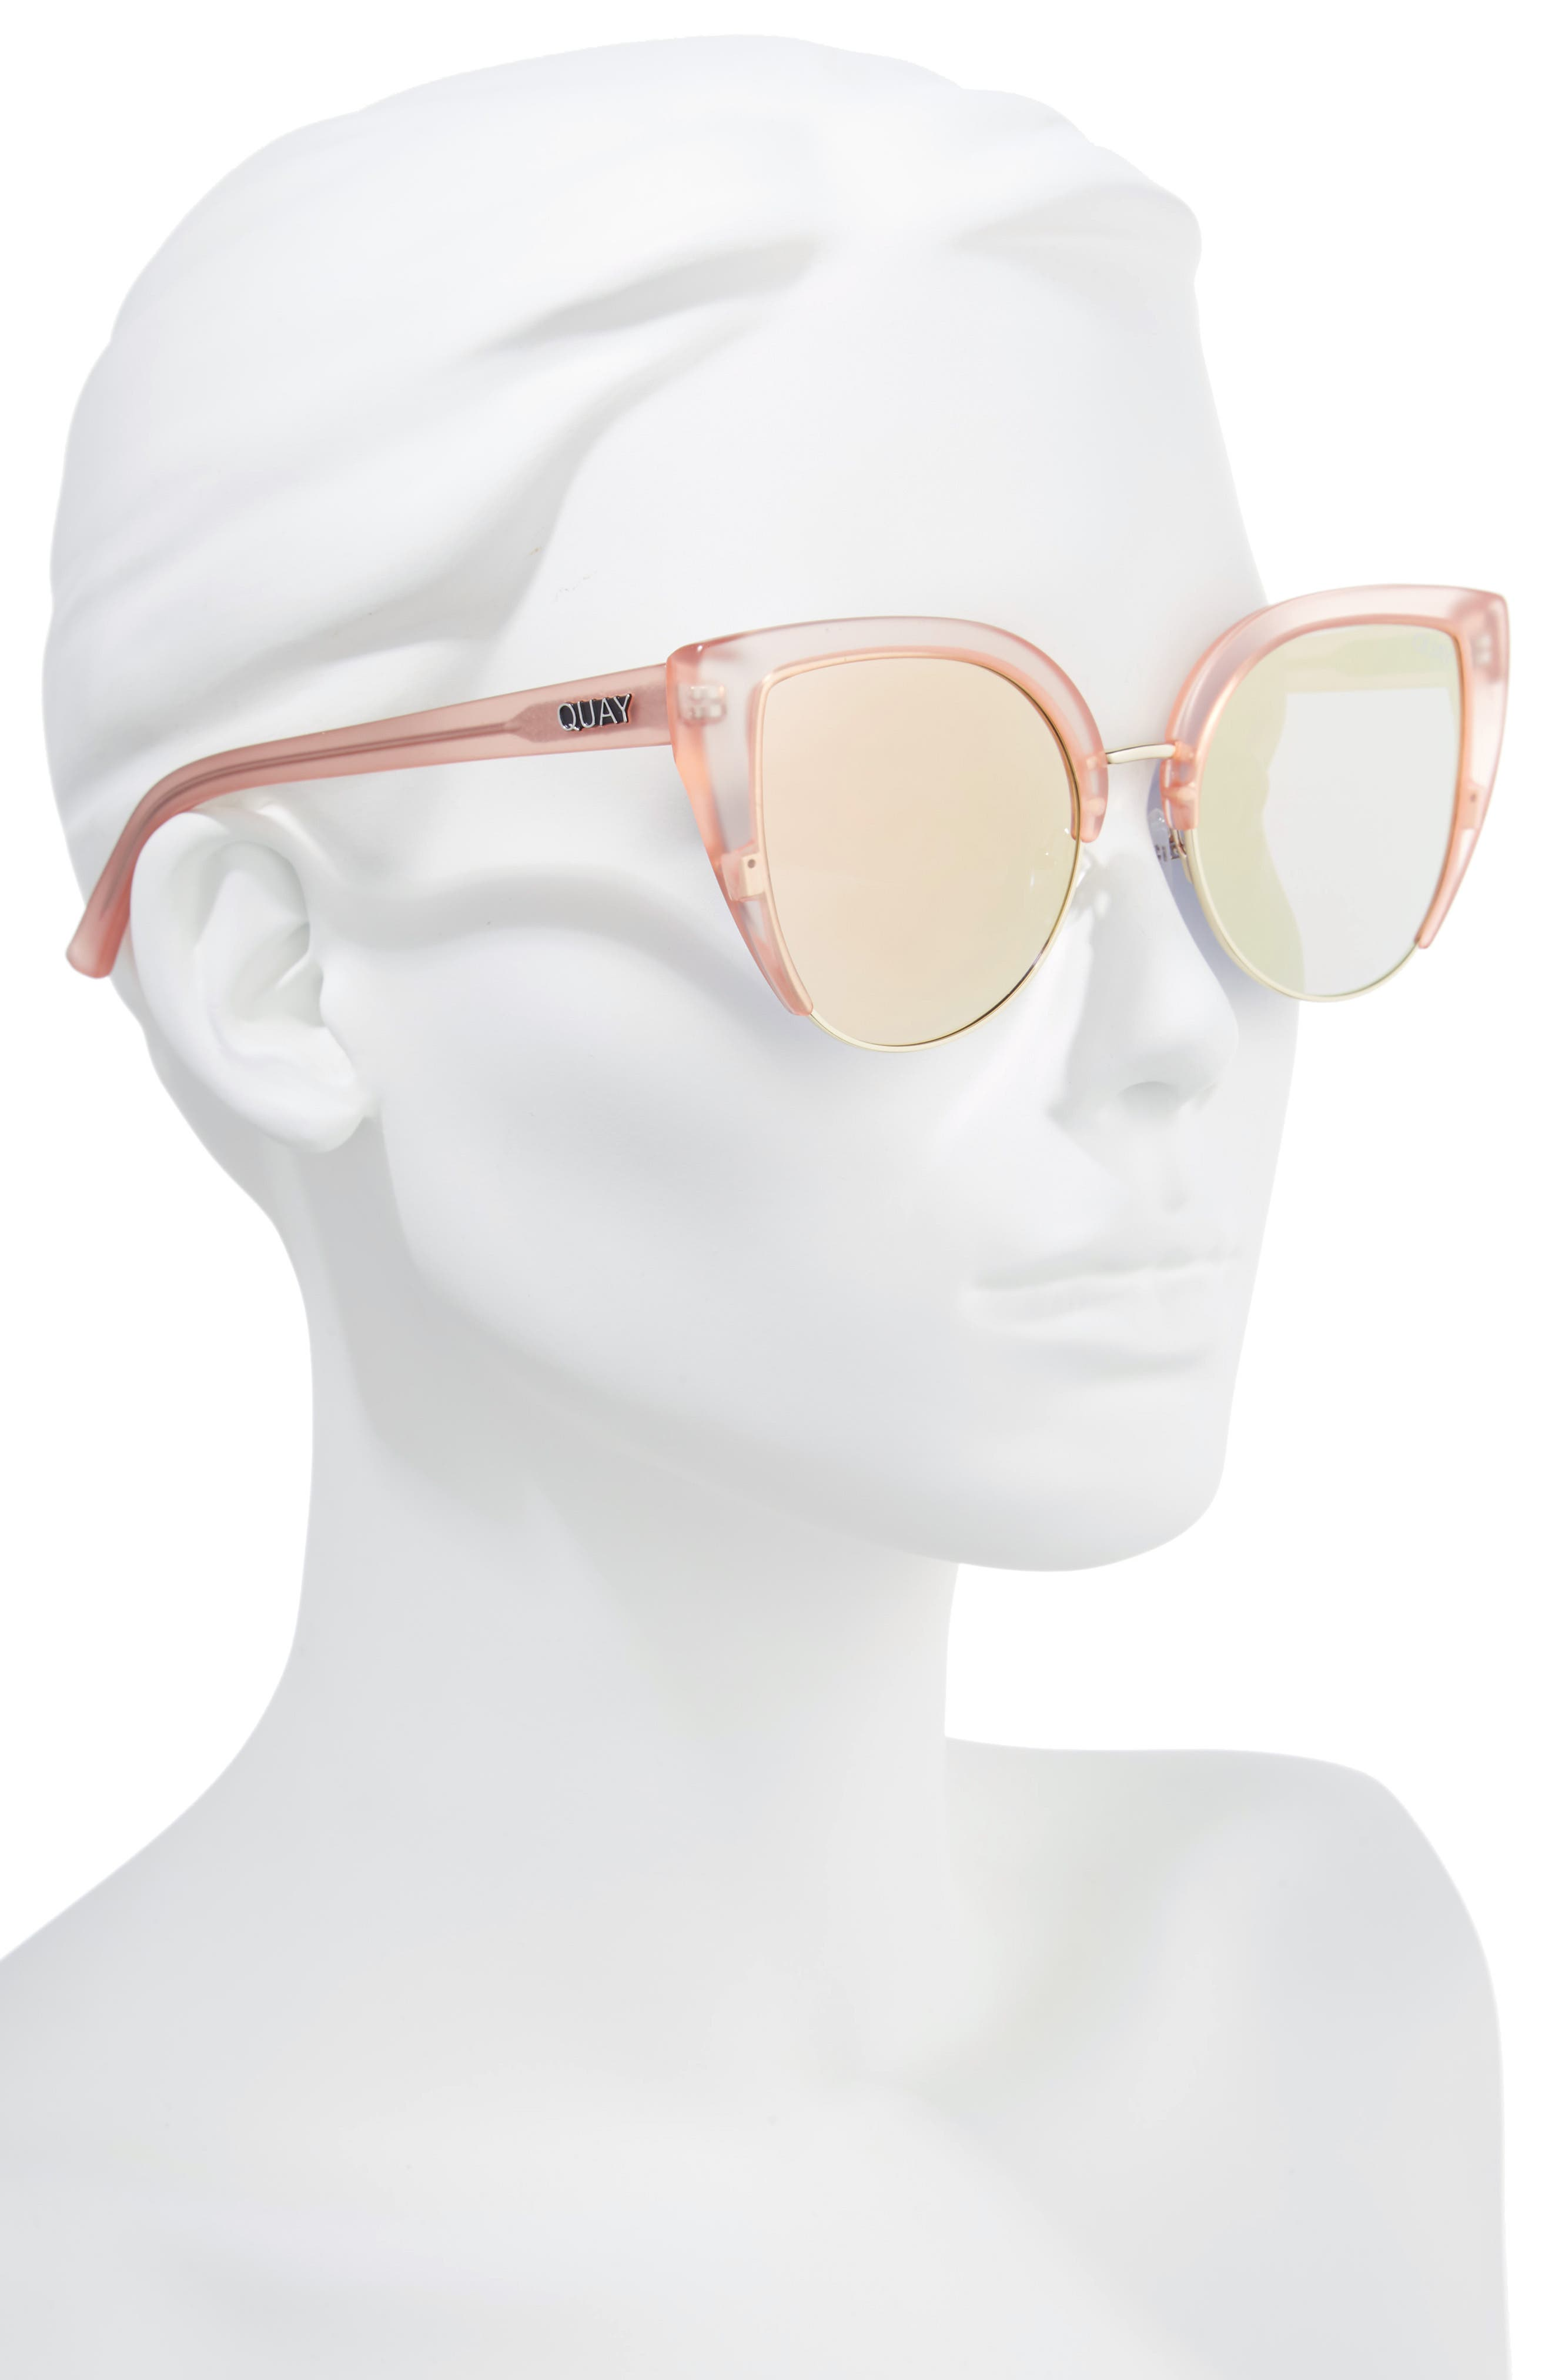 x Missguided Oh My Dayz 53mm Sunglasses,                             Alternate thumbnail 3, color,                             Pink/ Gold